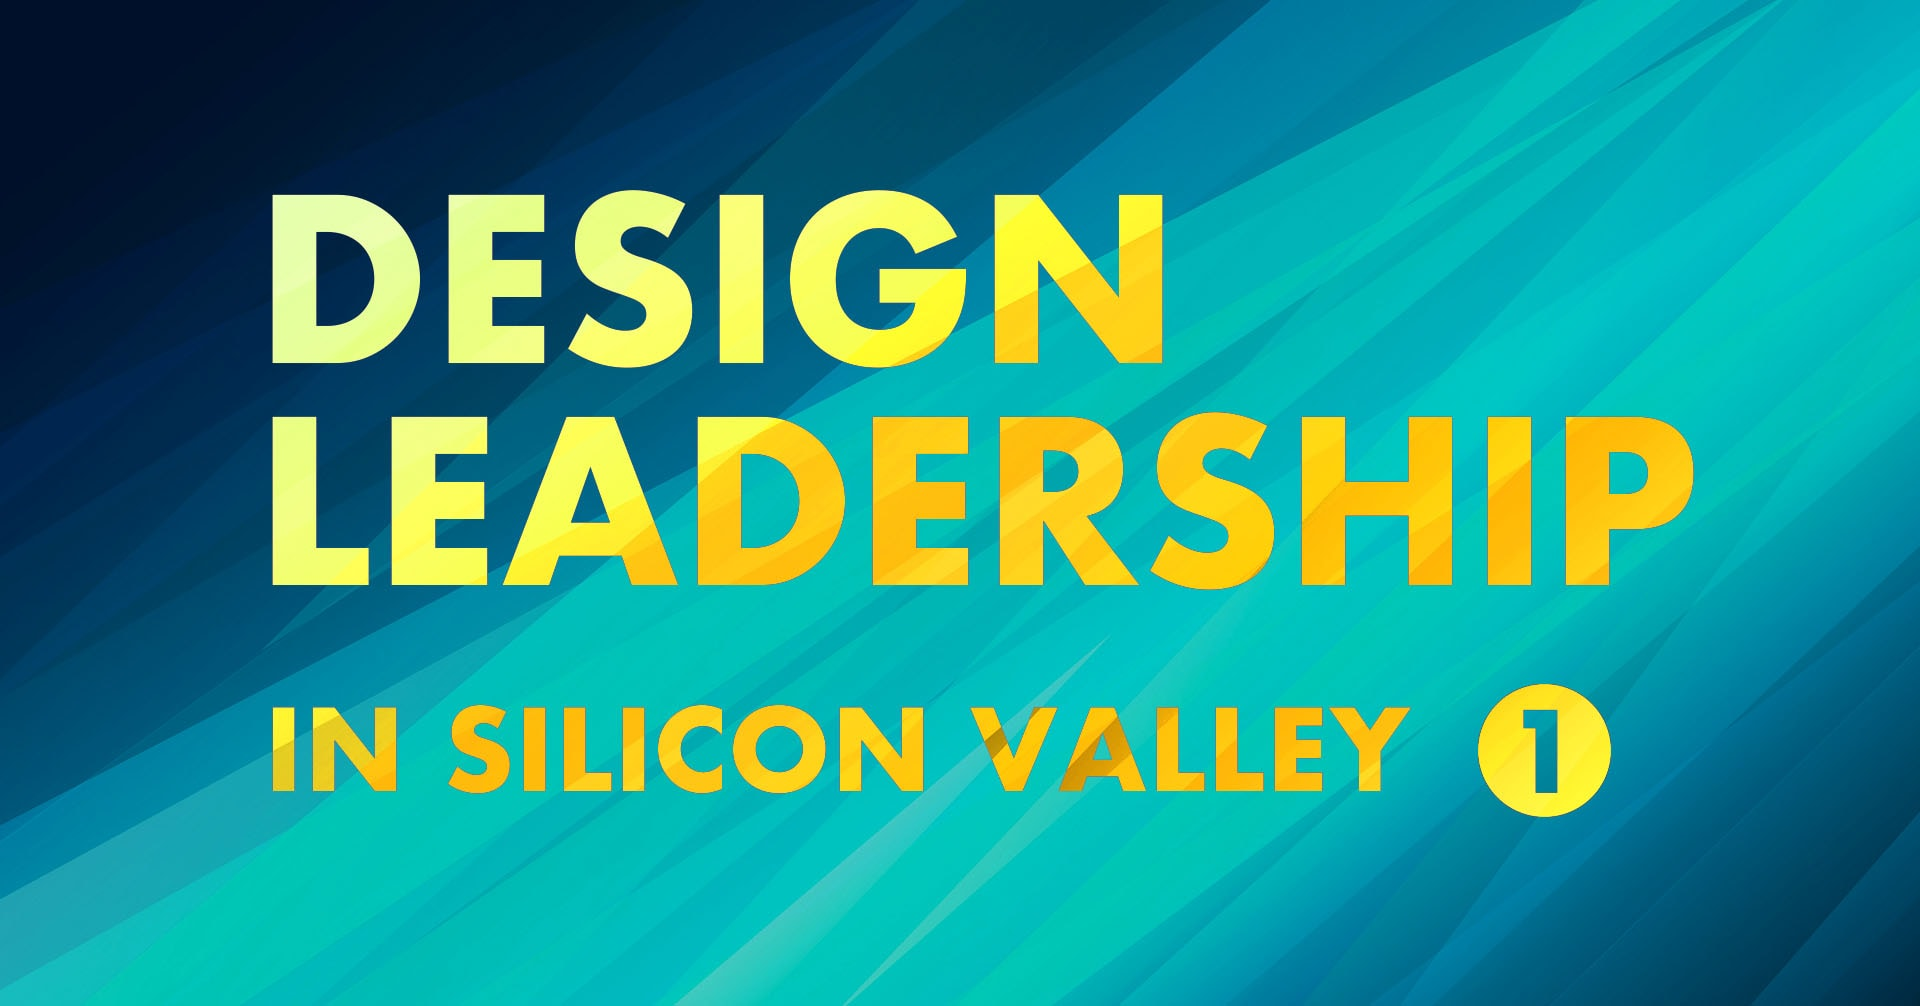 Design Leadership in Silicon Valley vol.1